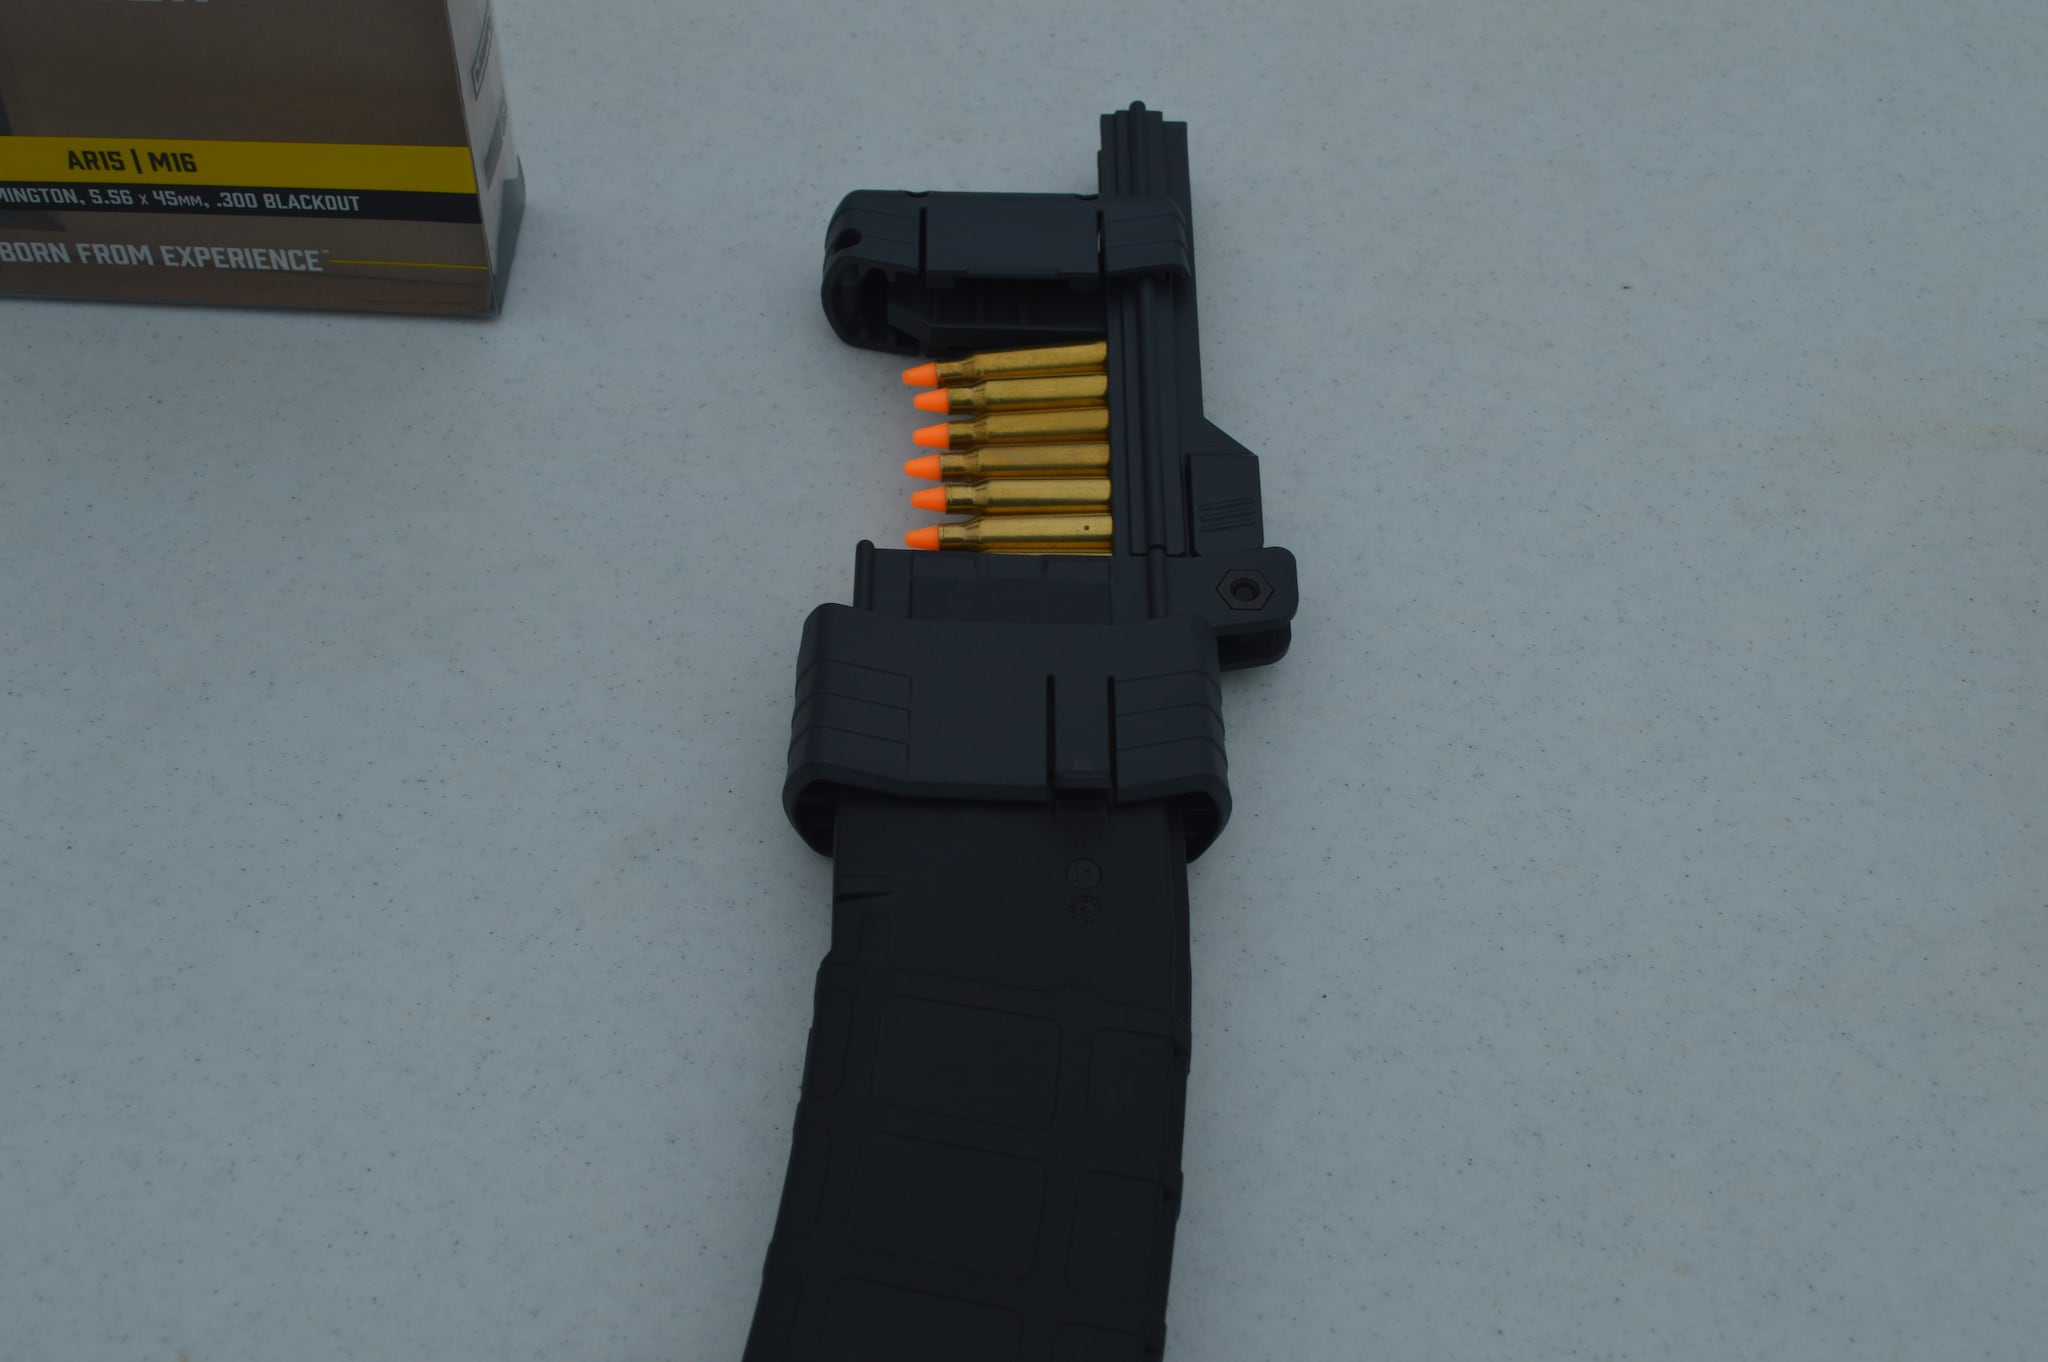 The Butler Creek ASAP AR-mag loader can be used one round at a time, fed with a stripper clip, or as shown here, quickly stacked with up to ten rounds at a crack. An easy press on the handle loads all the rounds in one crack. While this is great for reloading on the range, it would be even better for high volume varmint hunters. (Photo: Kristin Alberts)